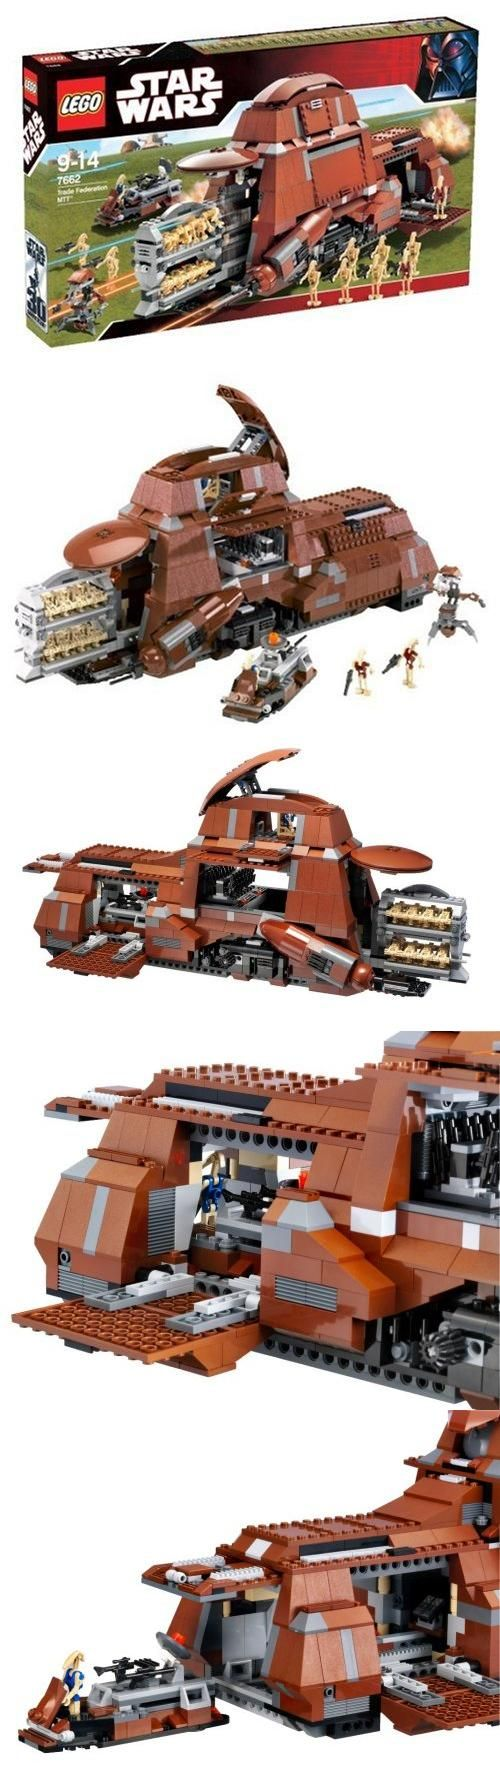 Lego Star Wars Set #7662 Trade Federation MTT, When the Trade Federation MTT shows up, it's time for the enemy to start running! Open its hatches and extend the secret storage rack to deploy a legion of battle droids, armed and ready to fight. Top..., #Toys, #Building Sets